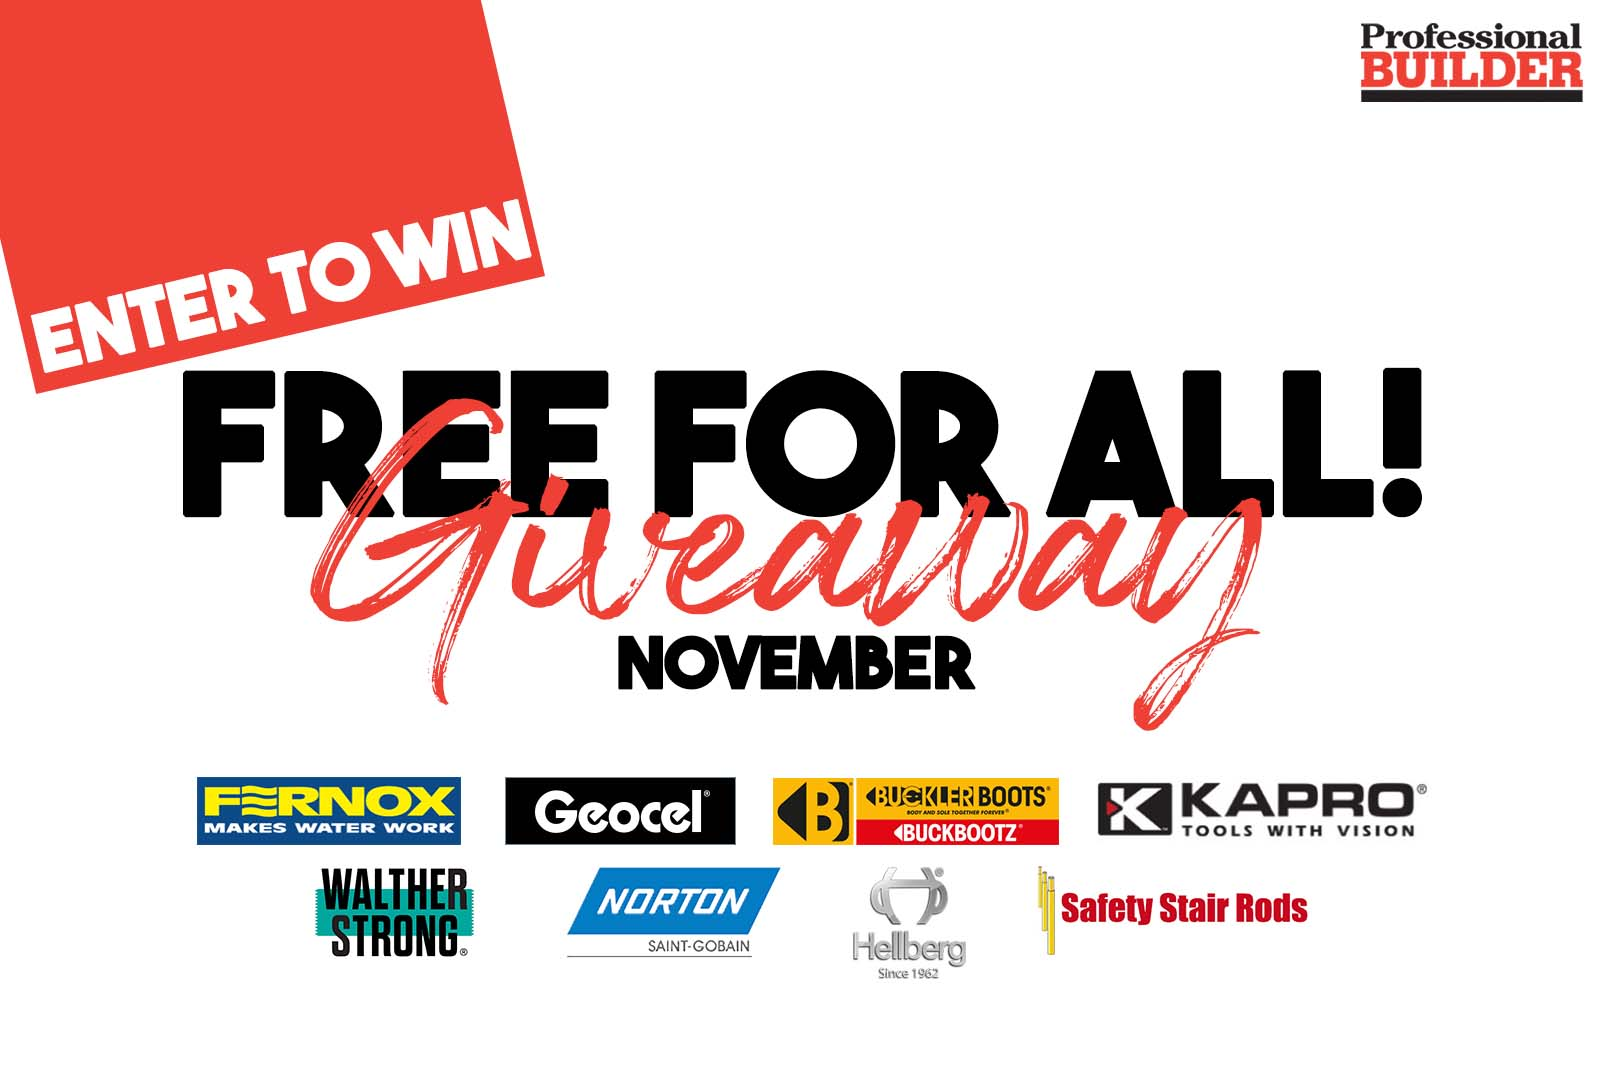 Free for all giveaway November 2019